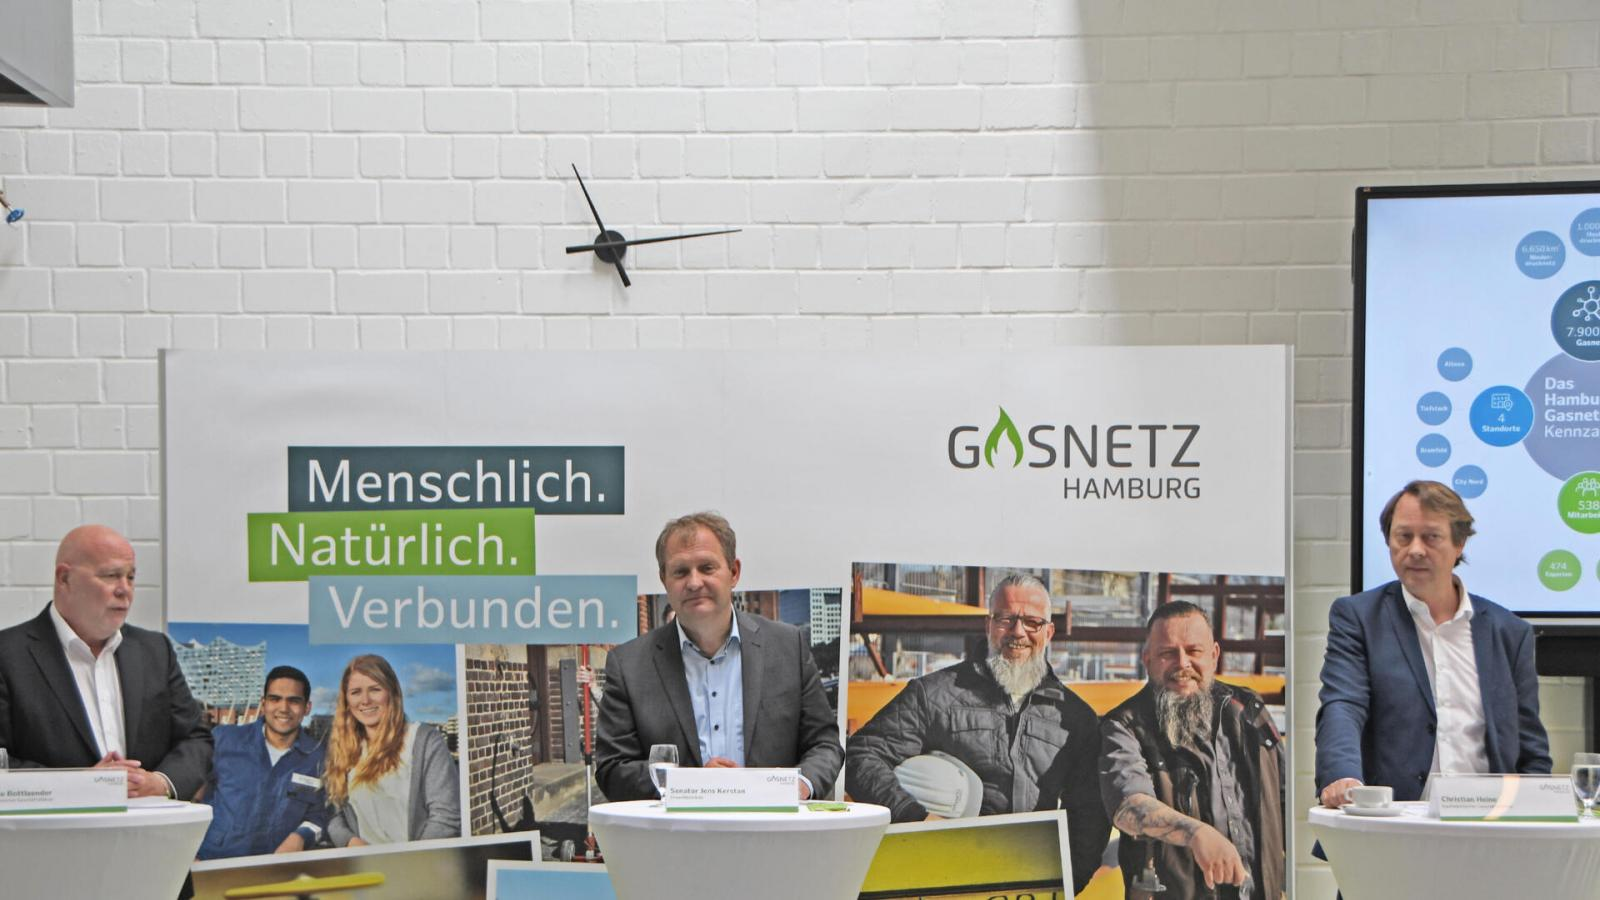 Gasnetz Hamburg's press conference